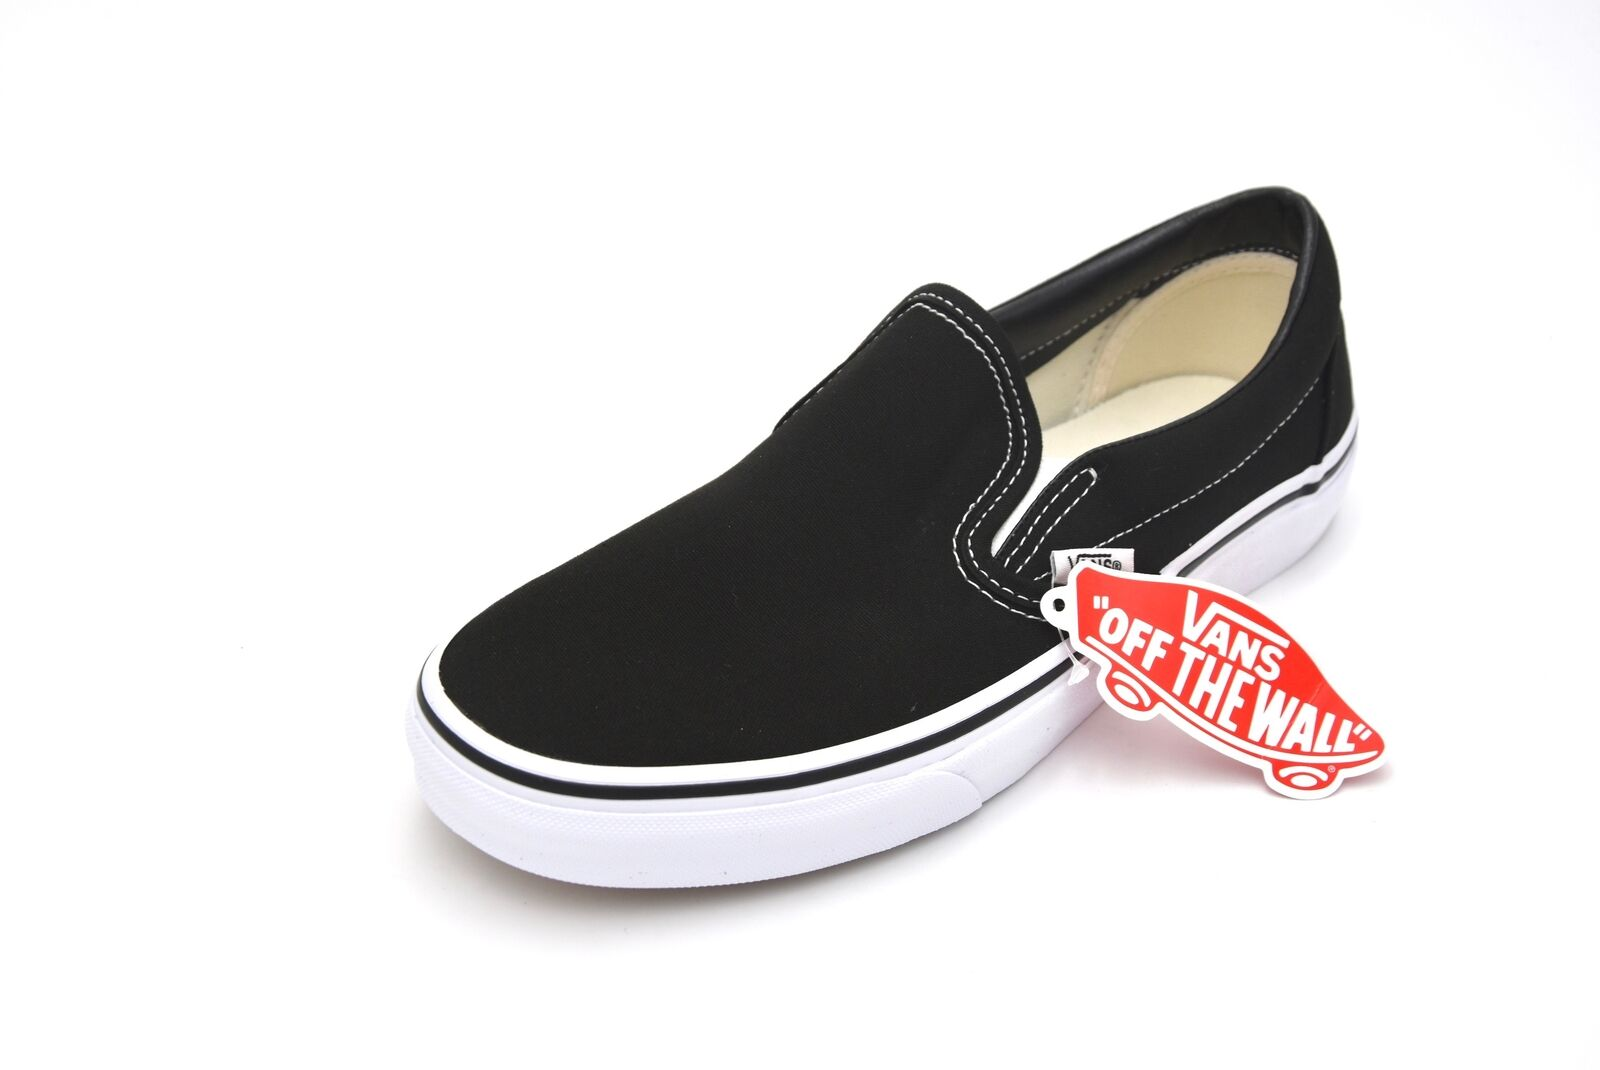 VANS MAN FREE TIME CASUAL SNEAKER SHOES CODE VN000EYEBLK CLASSIC SLIP ON